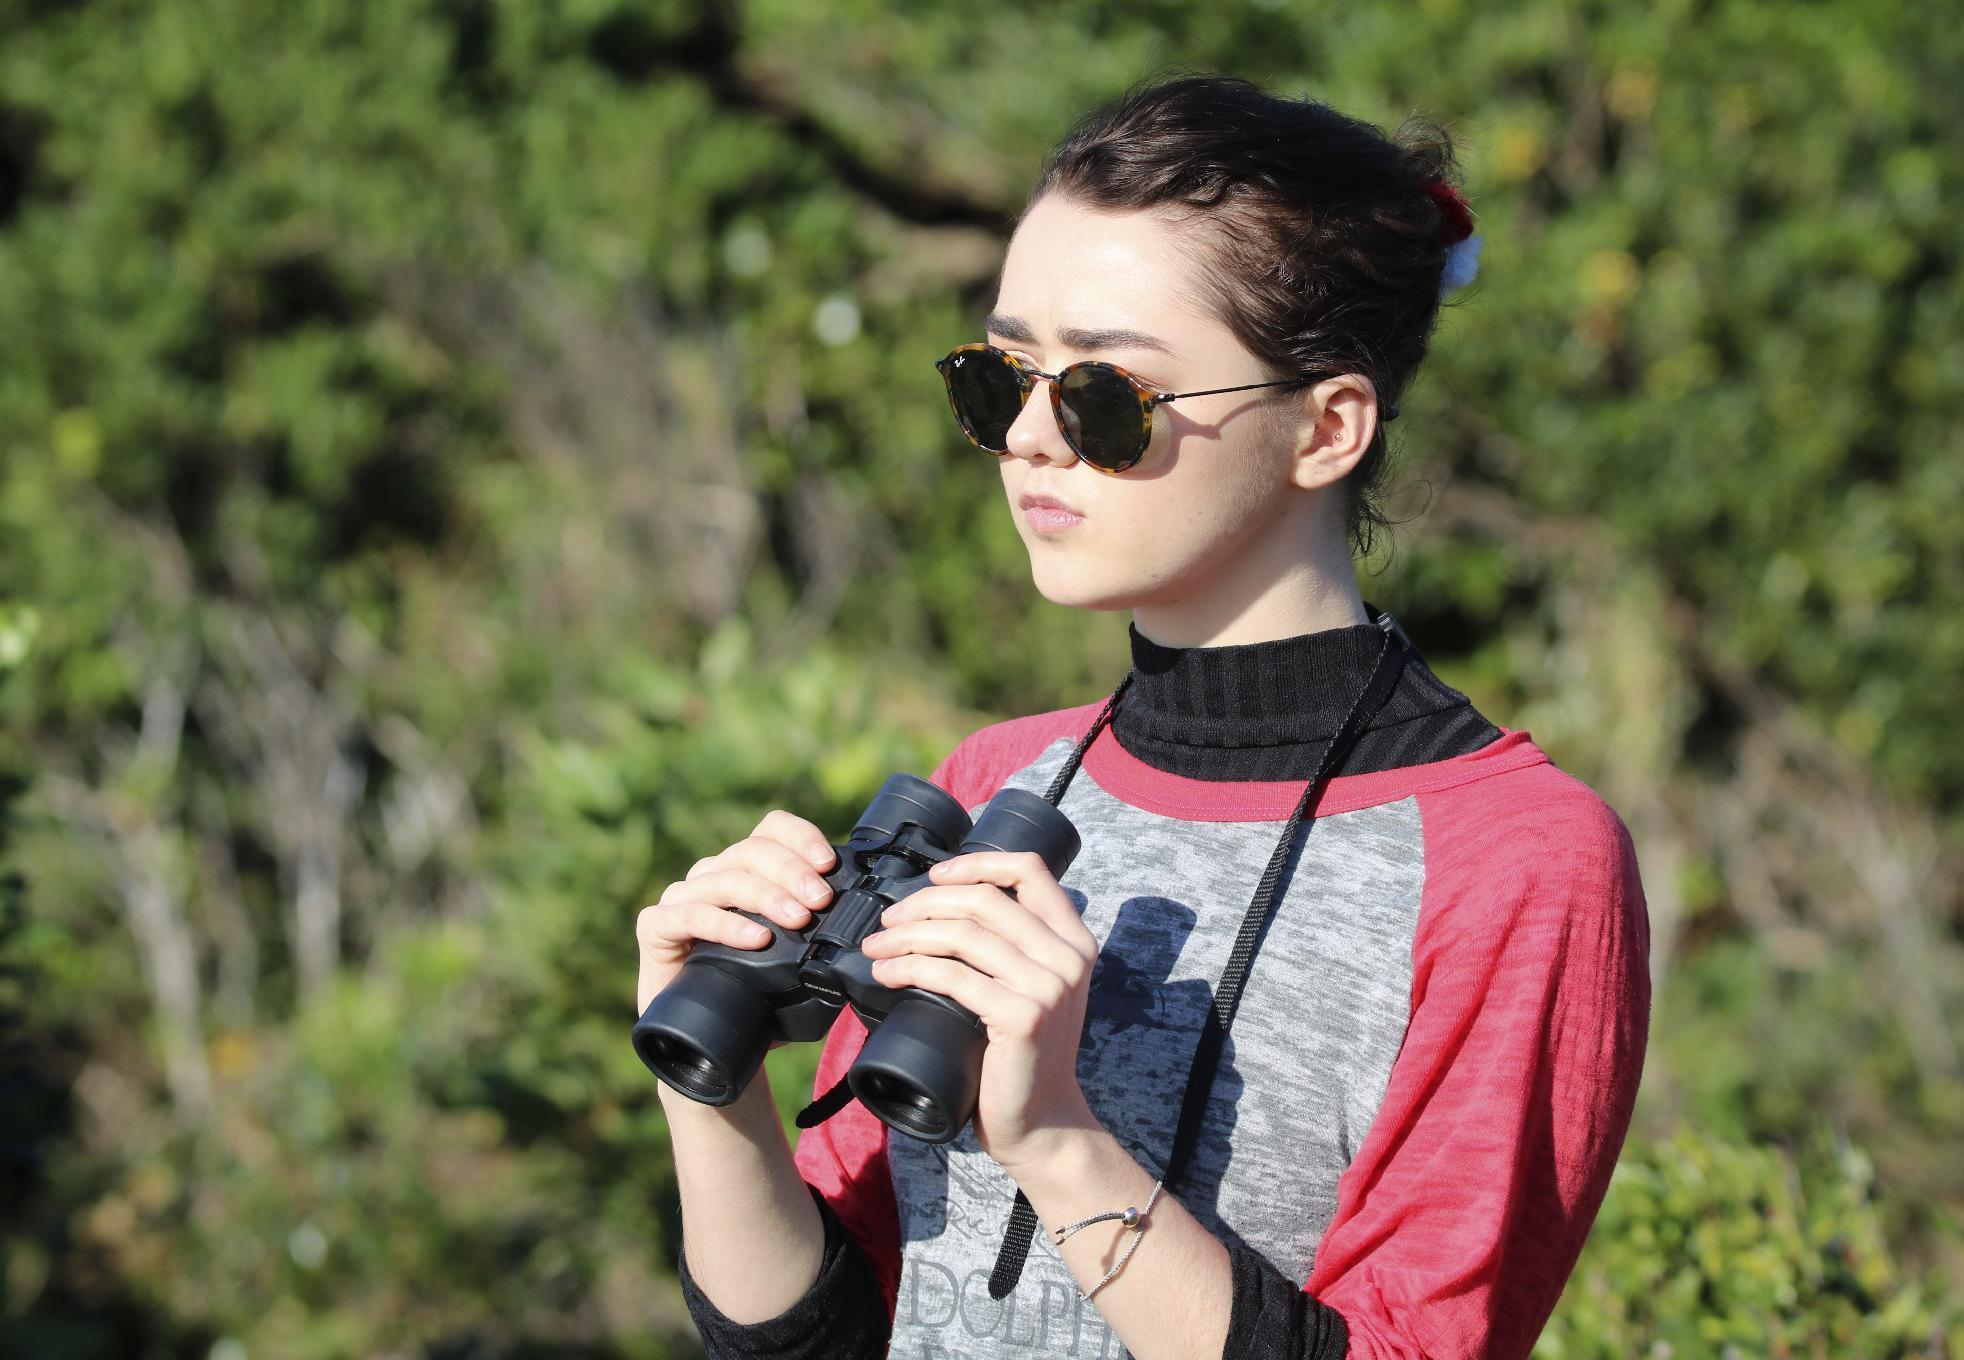 Maisie Williams: Stop going to dolphin shows